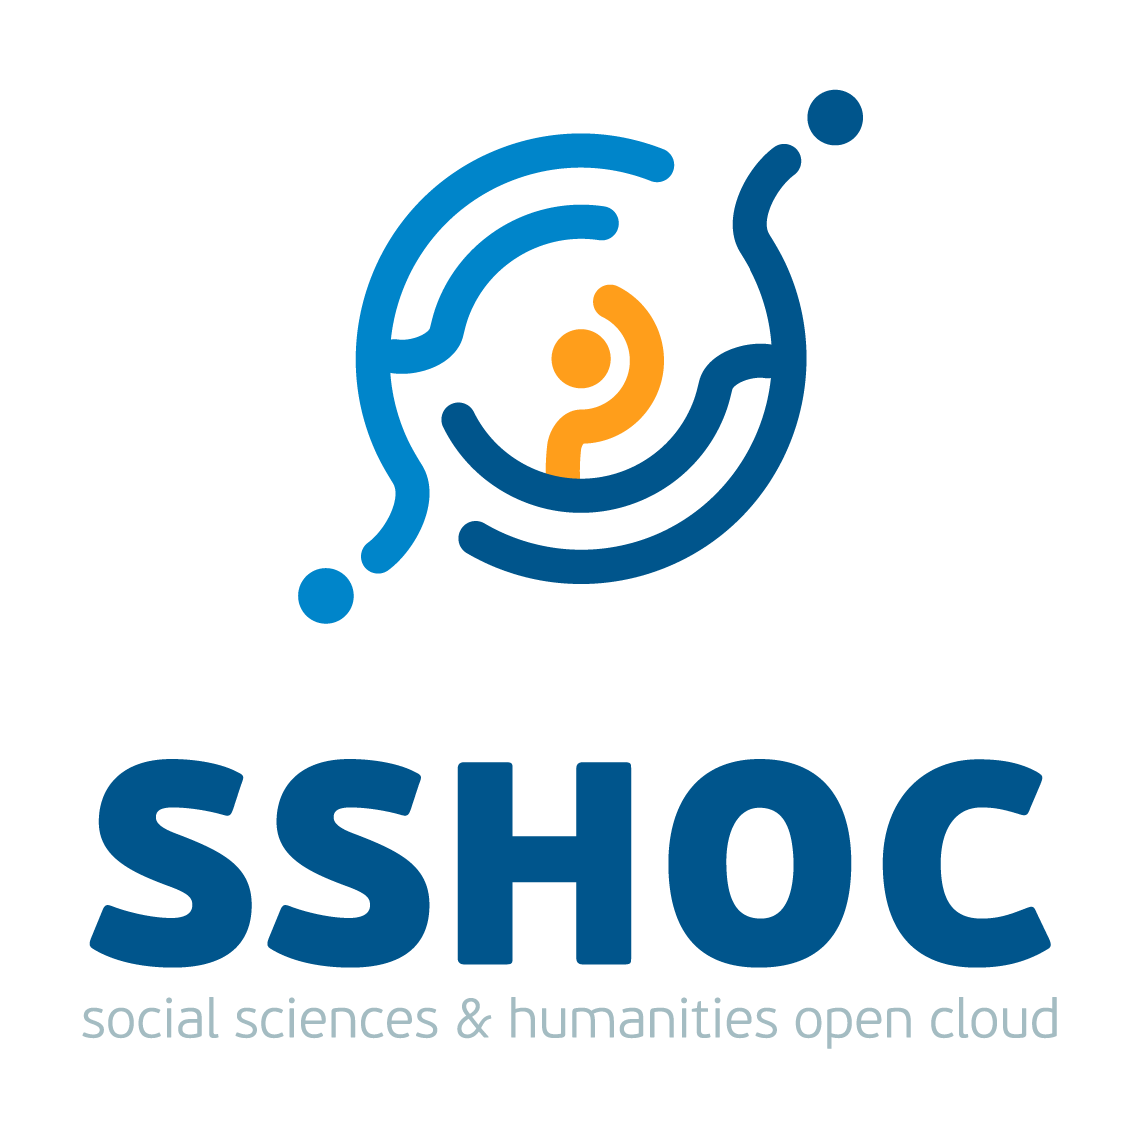 SSHOC_logo_compact.png